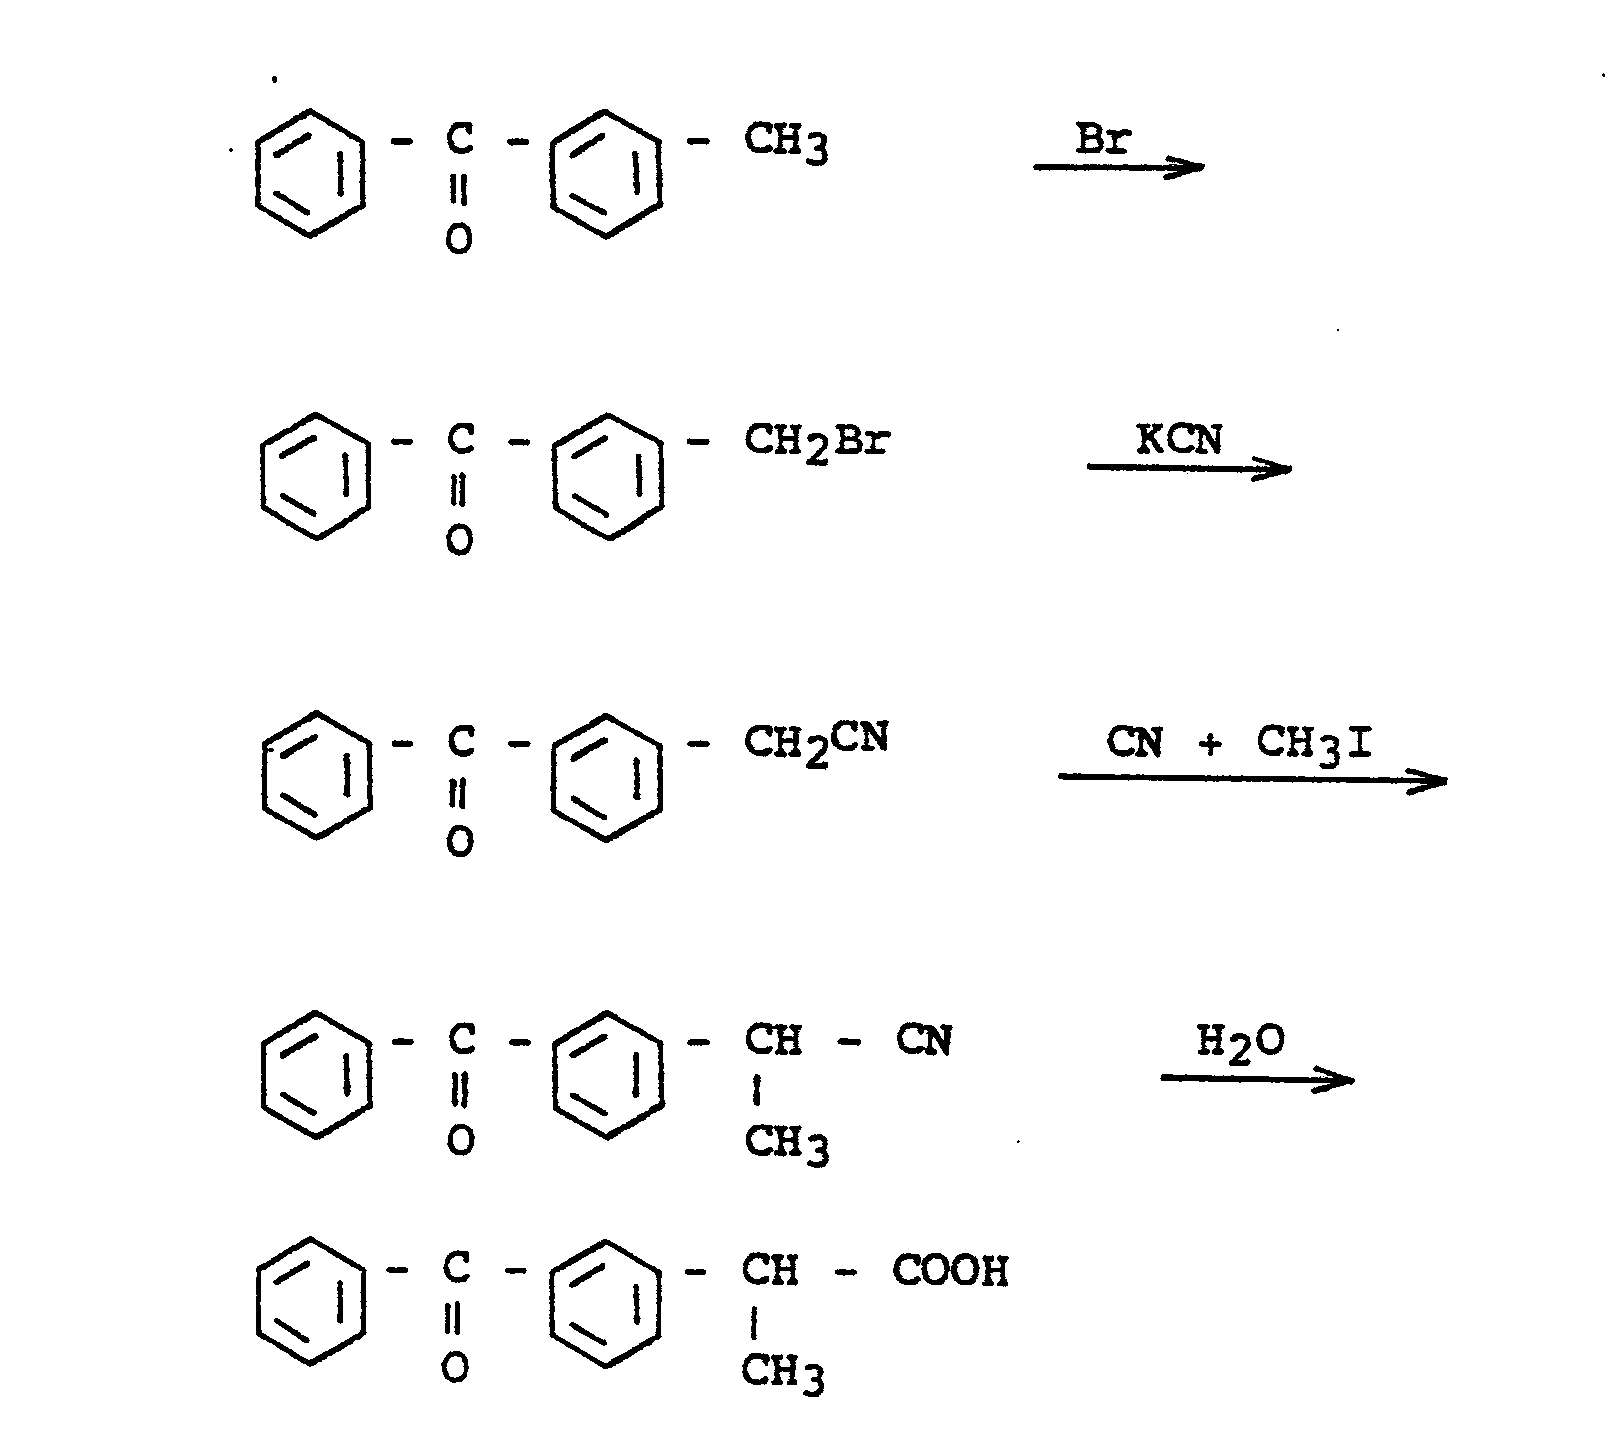 Ep0209905a1 11 3 Ethylphenylphenylethylene And Method For Its